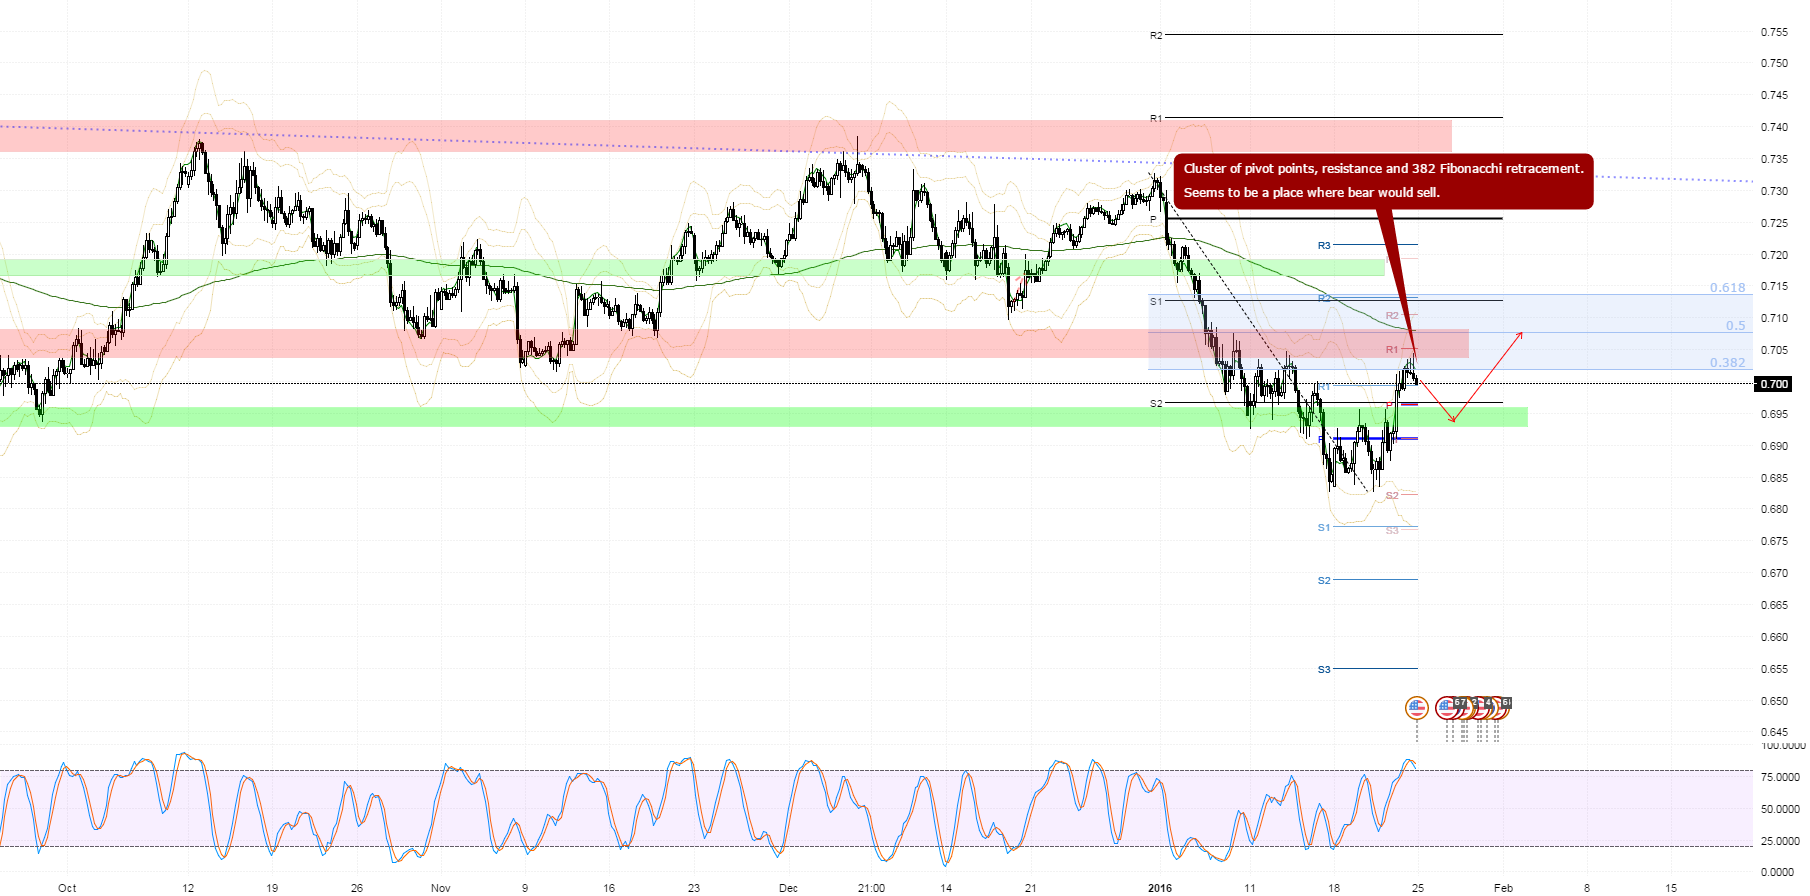 AUDUSD might be attractive for bears